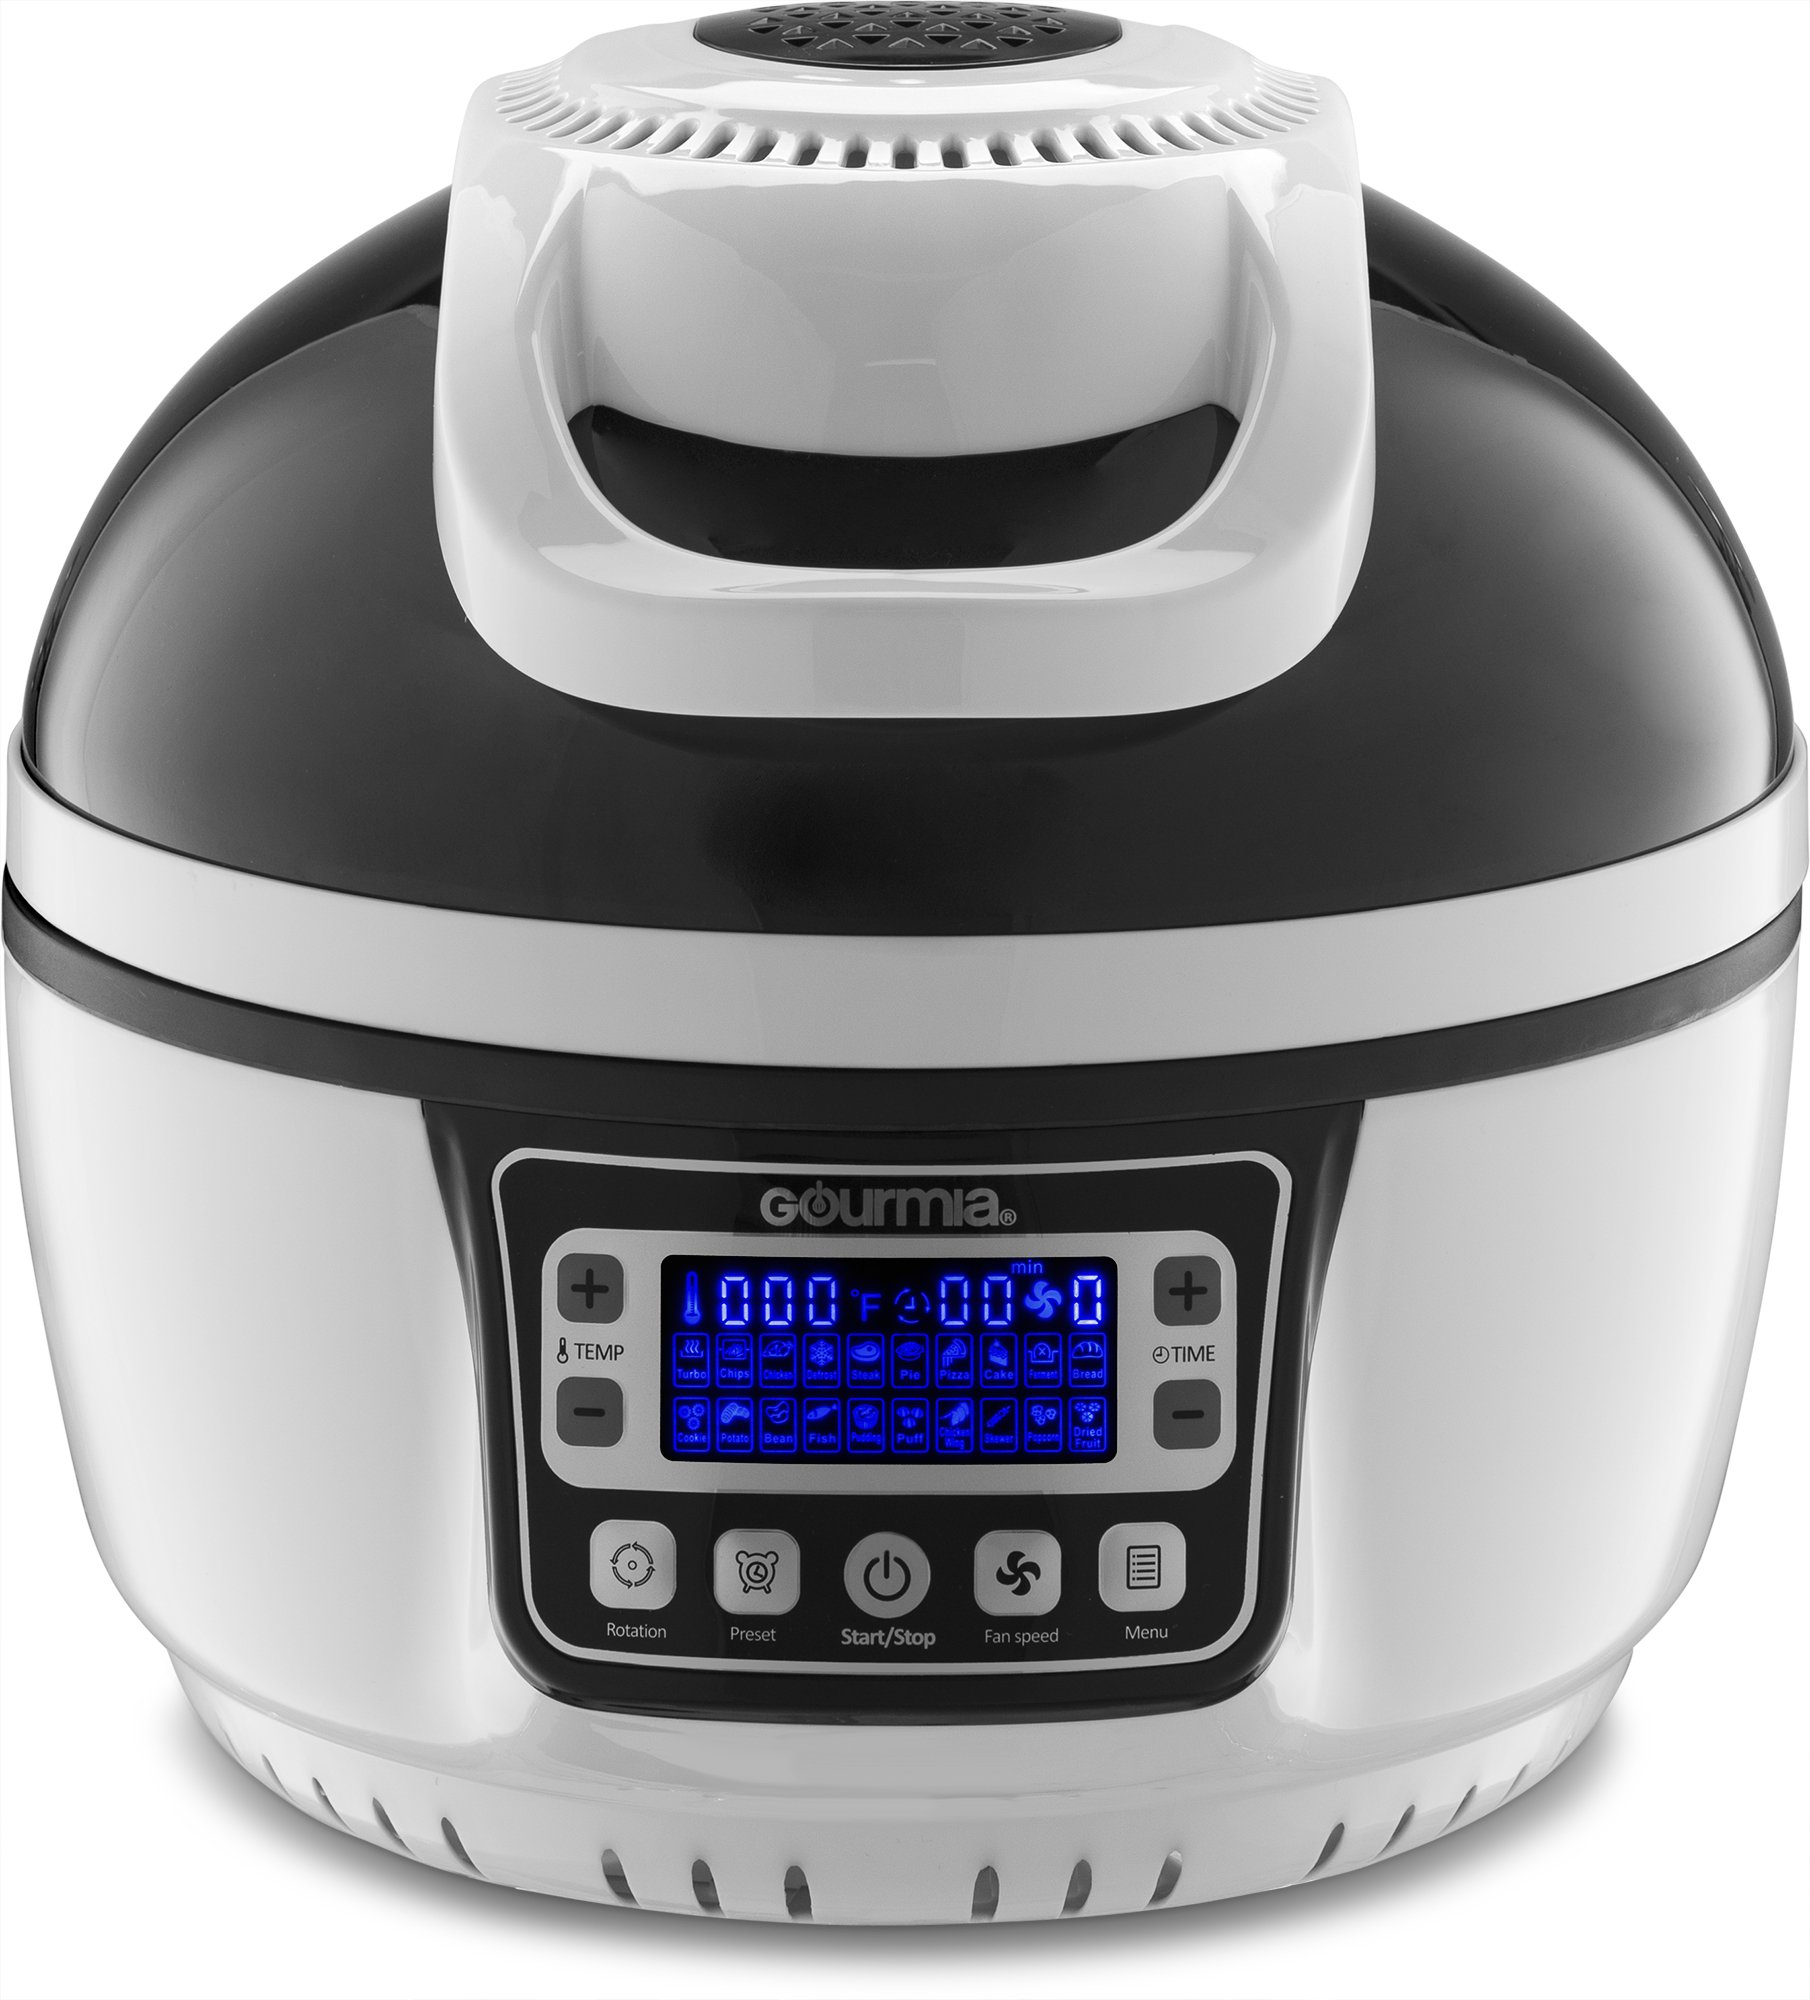 Gourmia GTA2800 WiFi Air Fryer - Multi Function Halogen Powered Rotating Rotisserie Grill & Electric Oven, 20 Cooking Functions, Programmable Timer, Includes 11pc Kit & Free Recipe Book - 110V by Gourmia (Image #7)